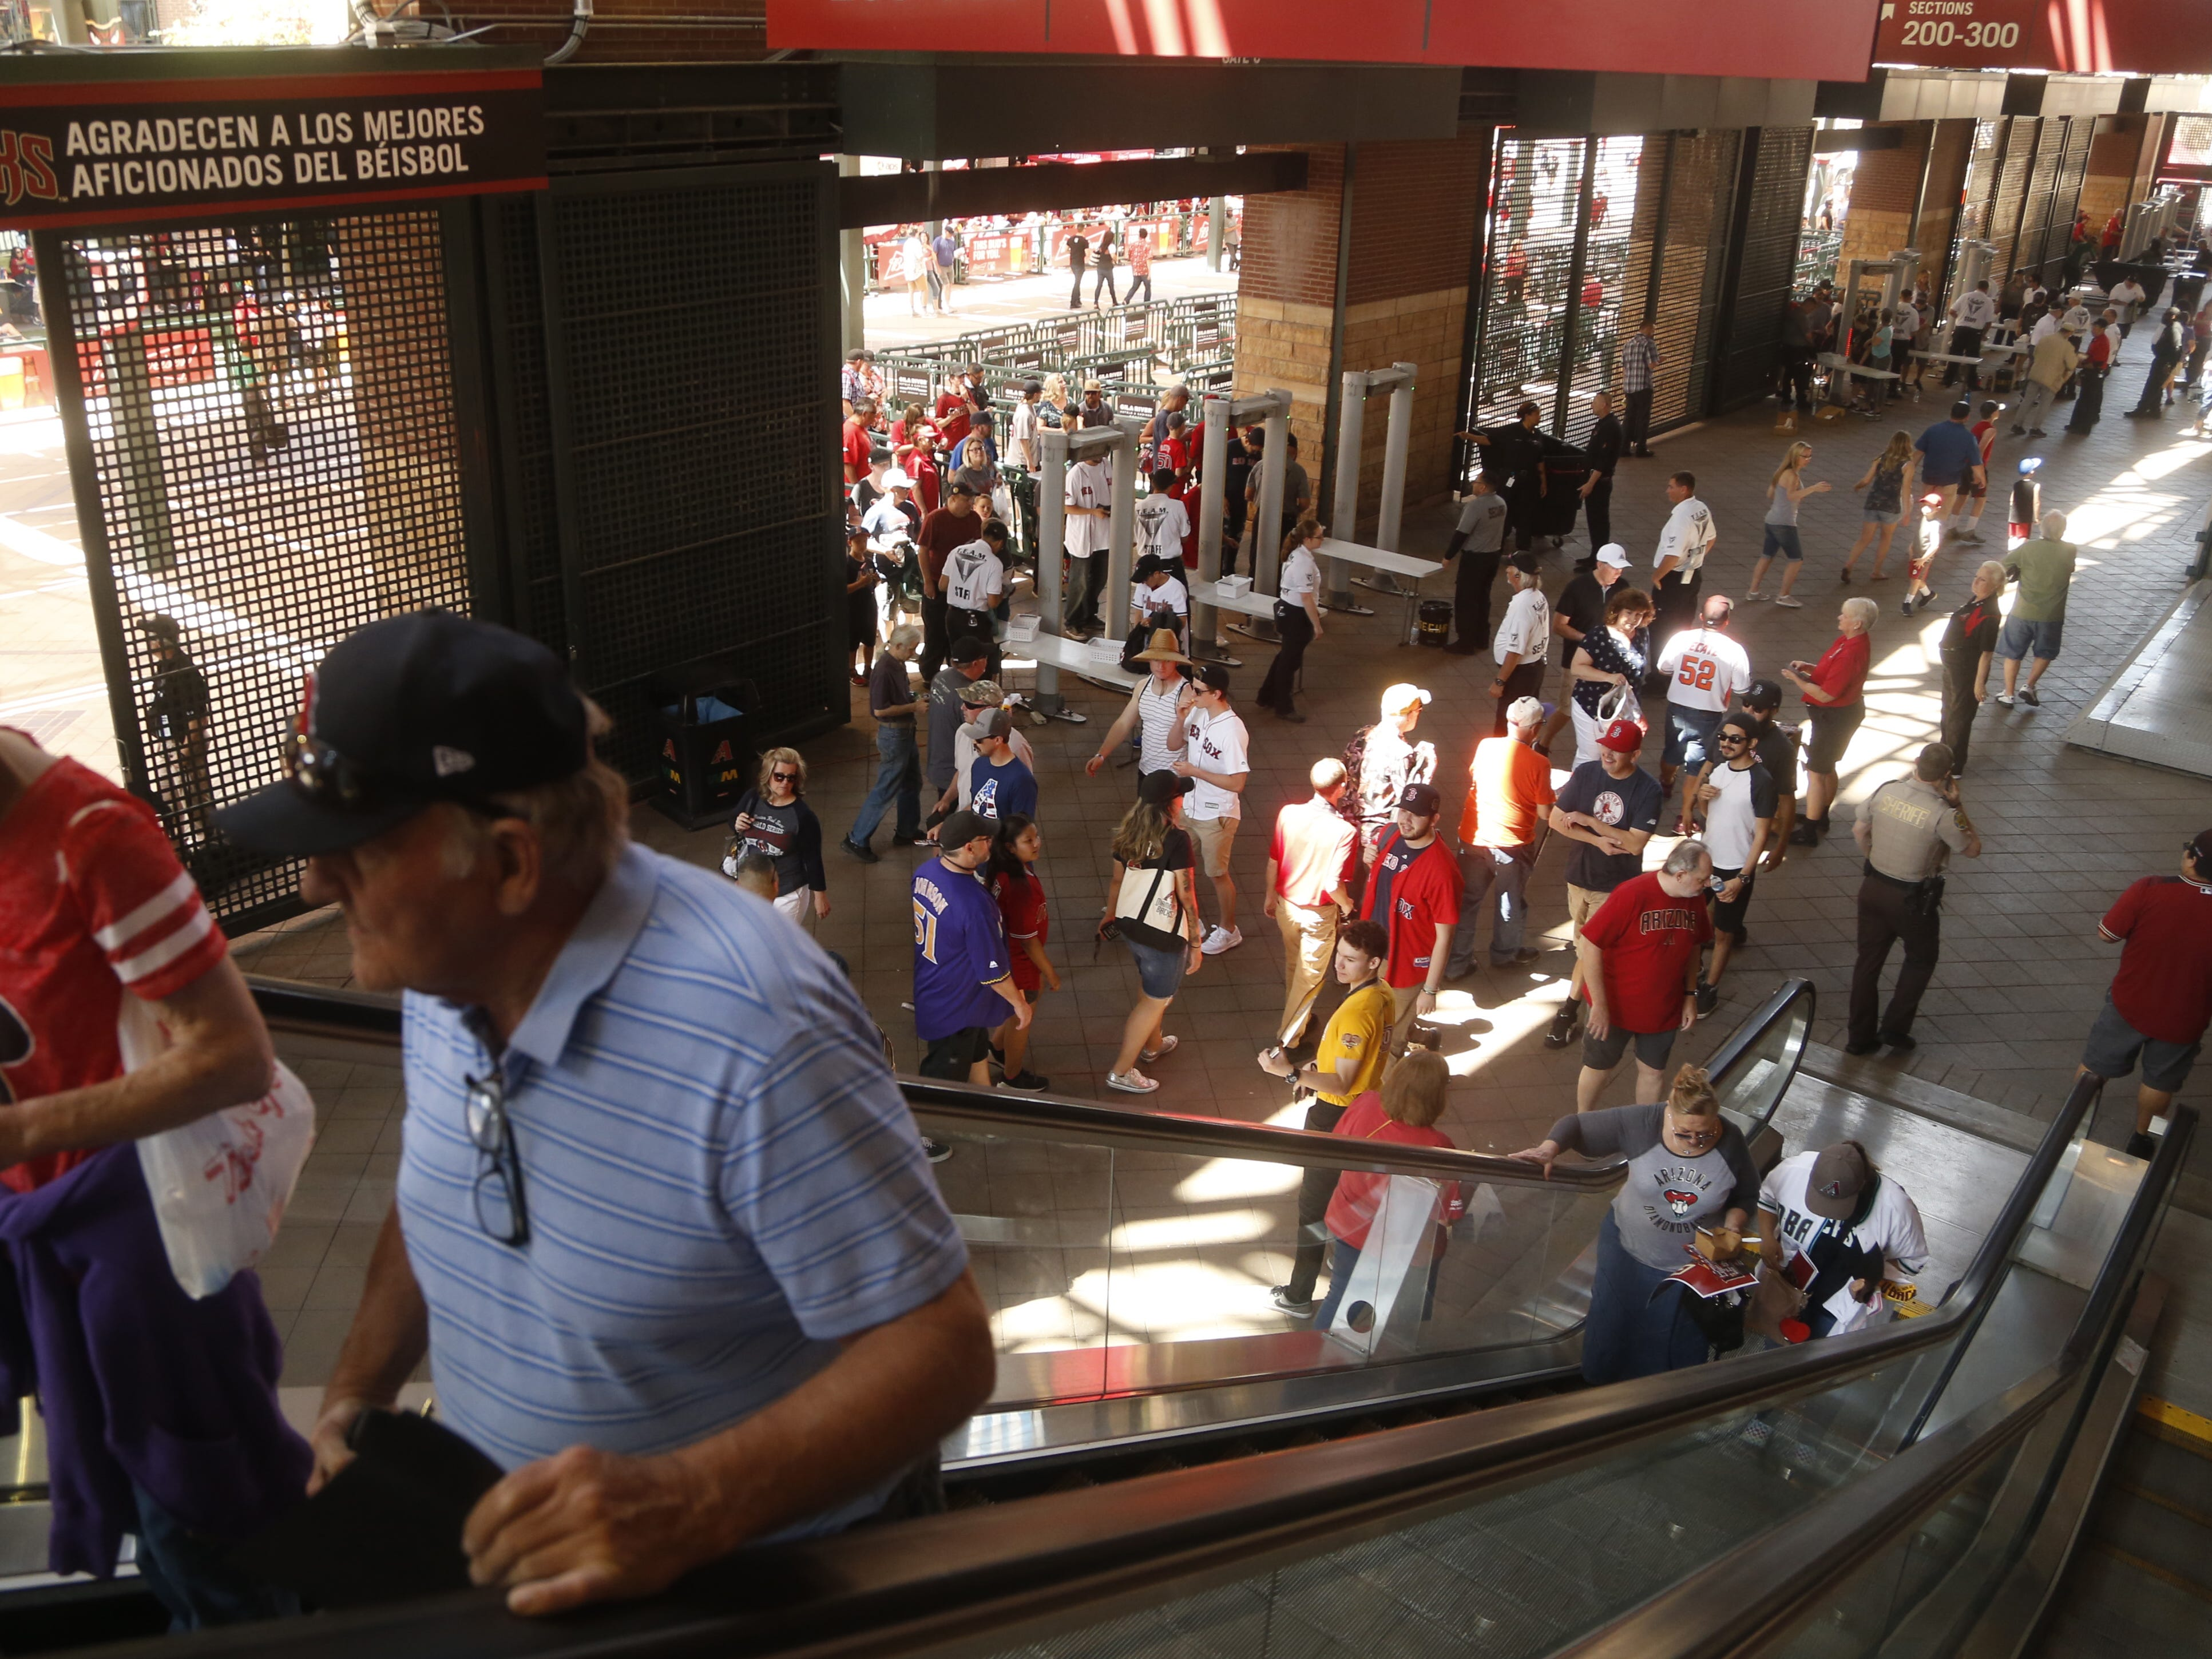 Fans arrive at Chase Field on the Opening Day for the Diamondbacks vs Red Sox in Phoenix, Ariz. on April 5, 2019.